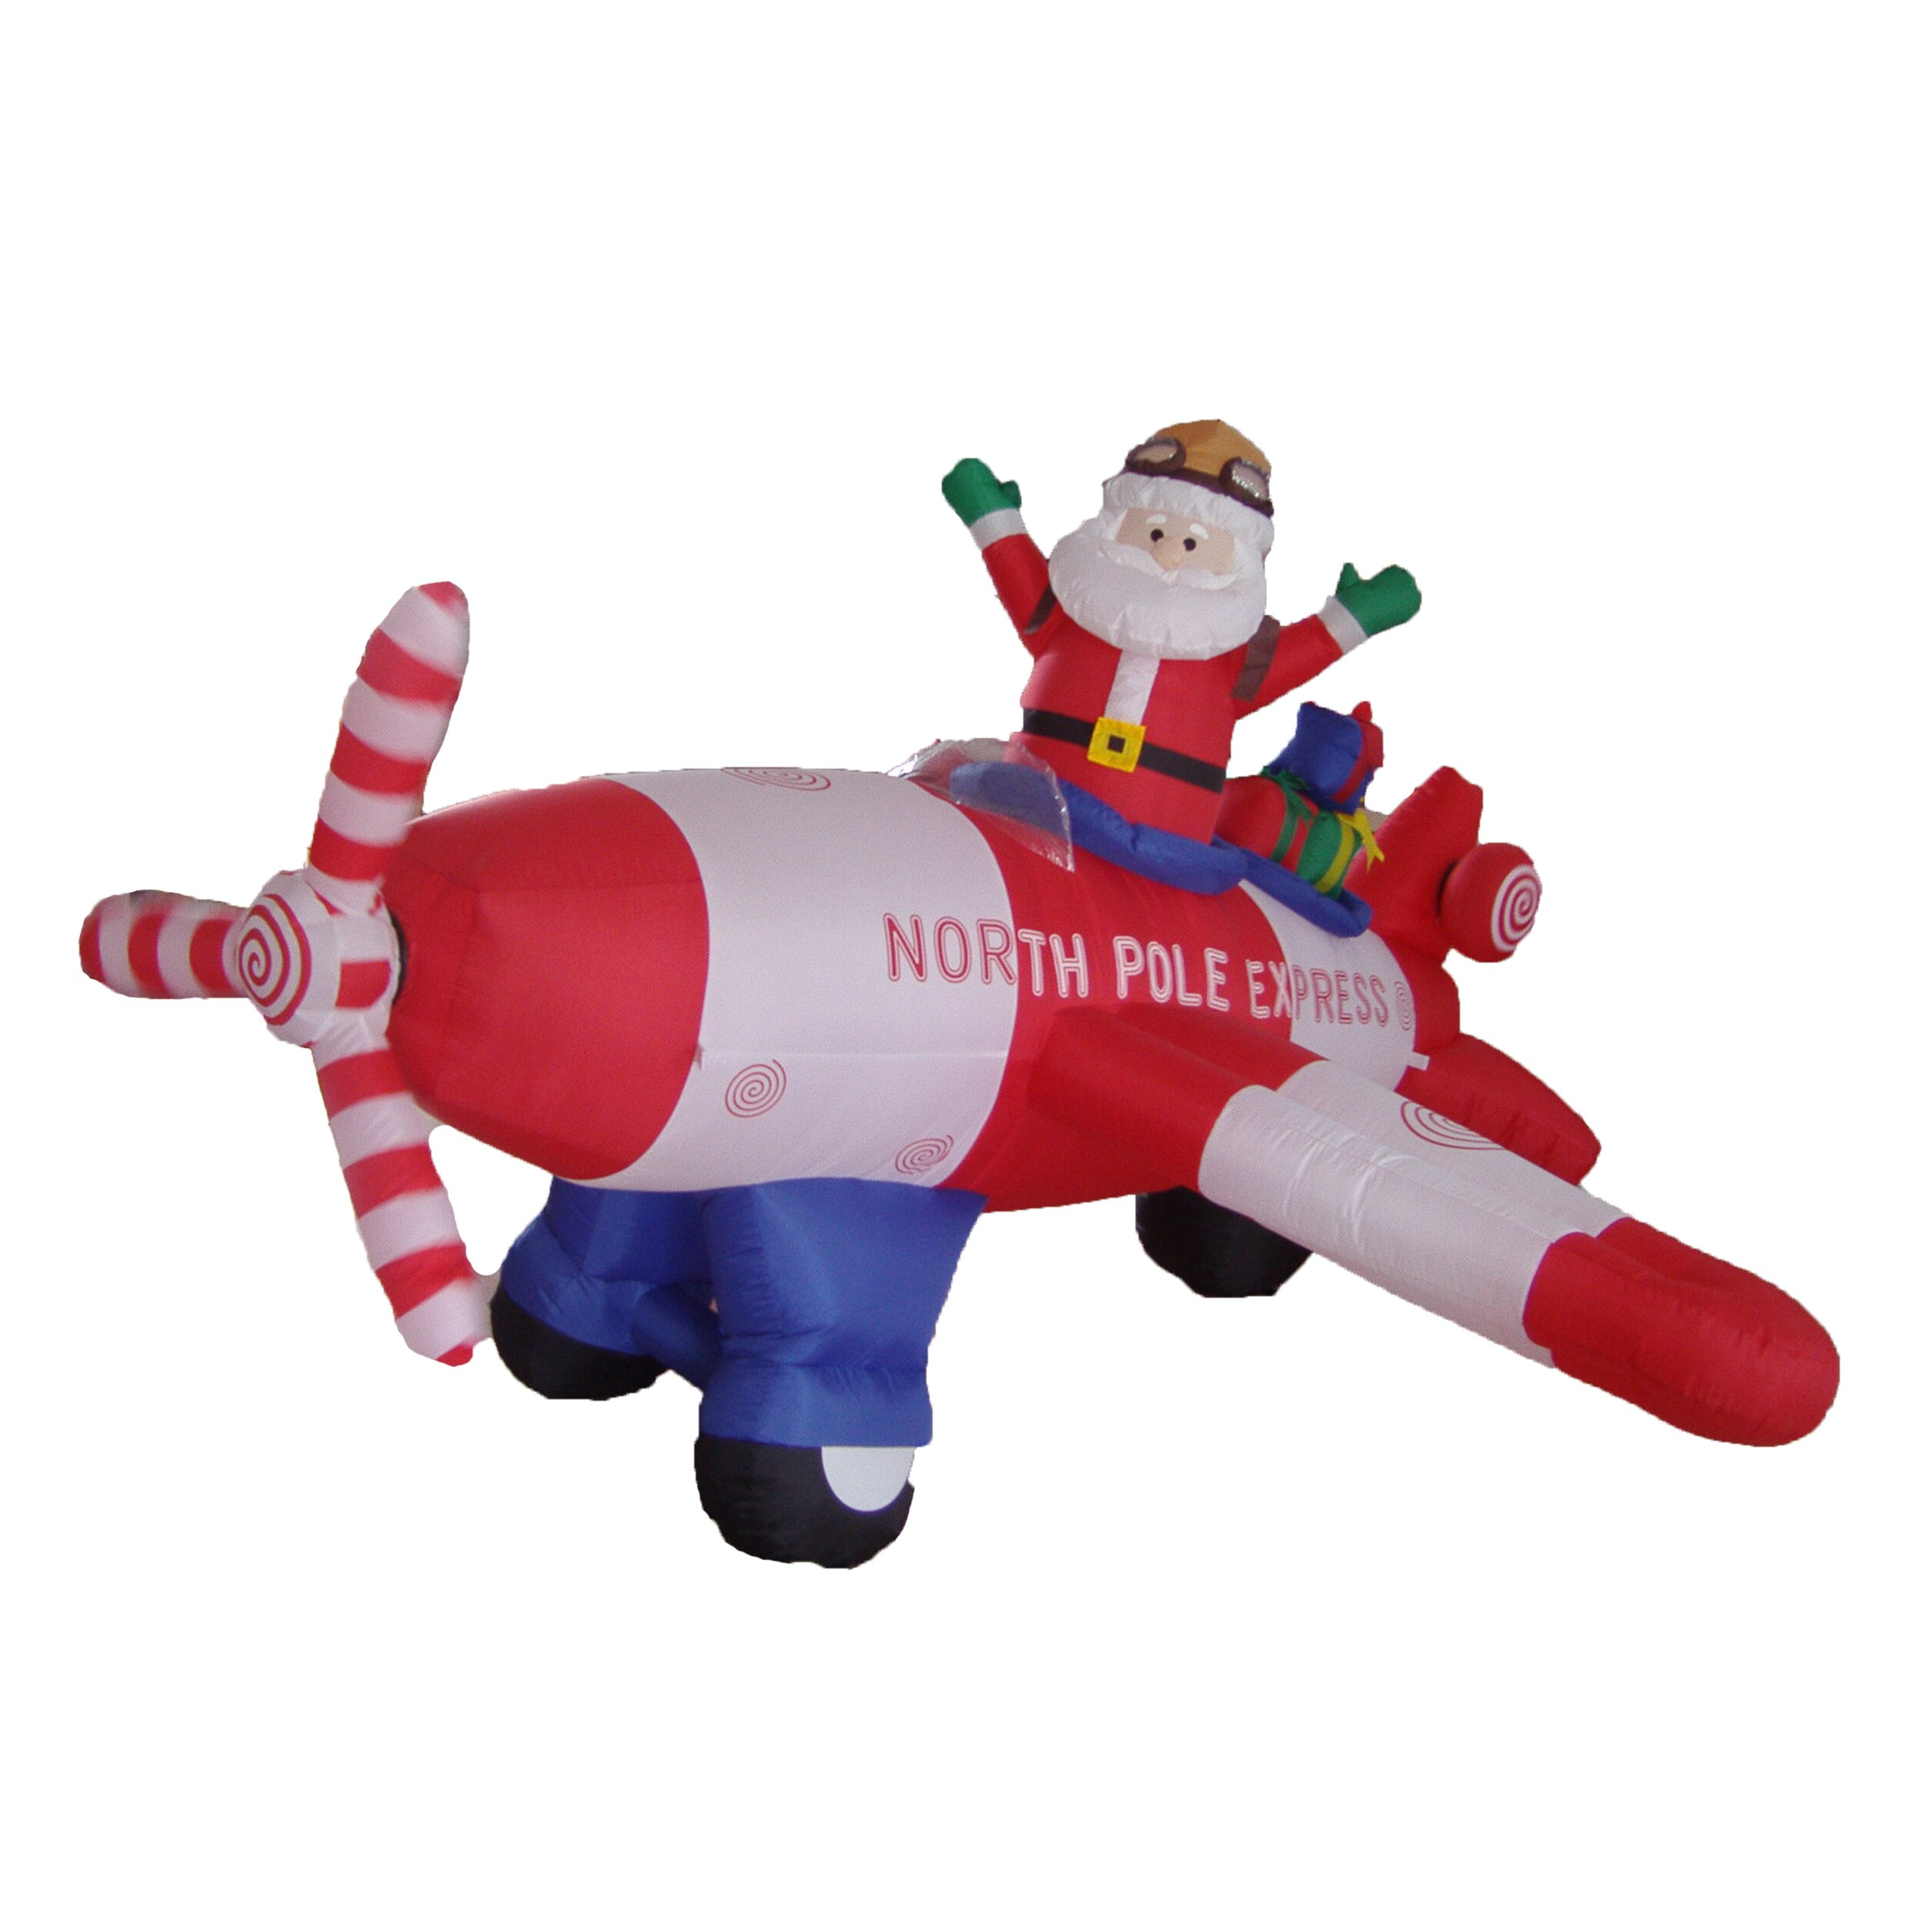 Bzb goods christmas inflatable animated santa claus for Large outdoor christmas decorations sale